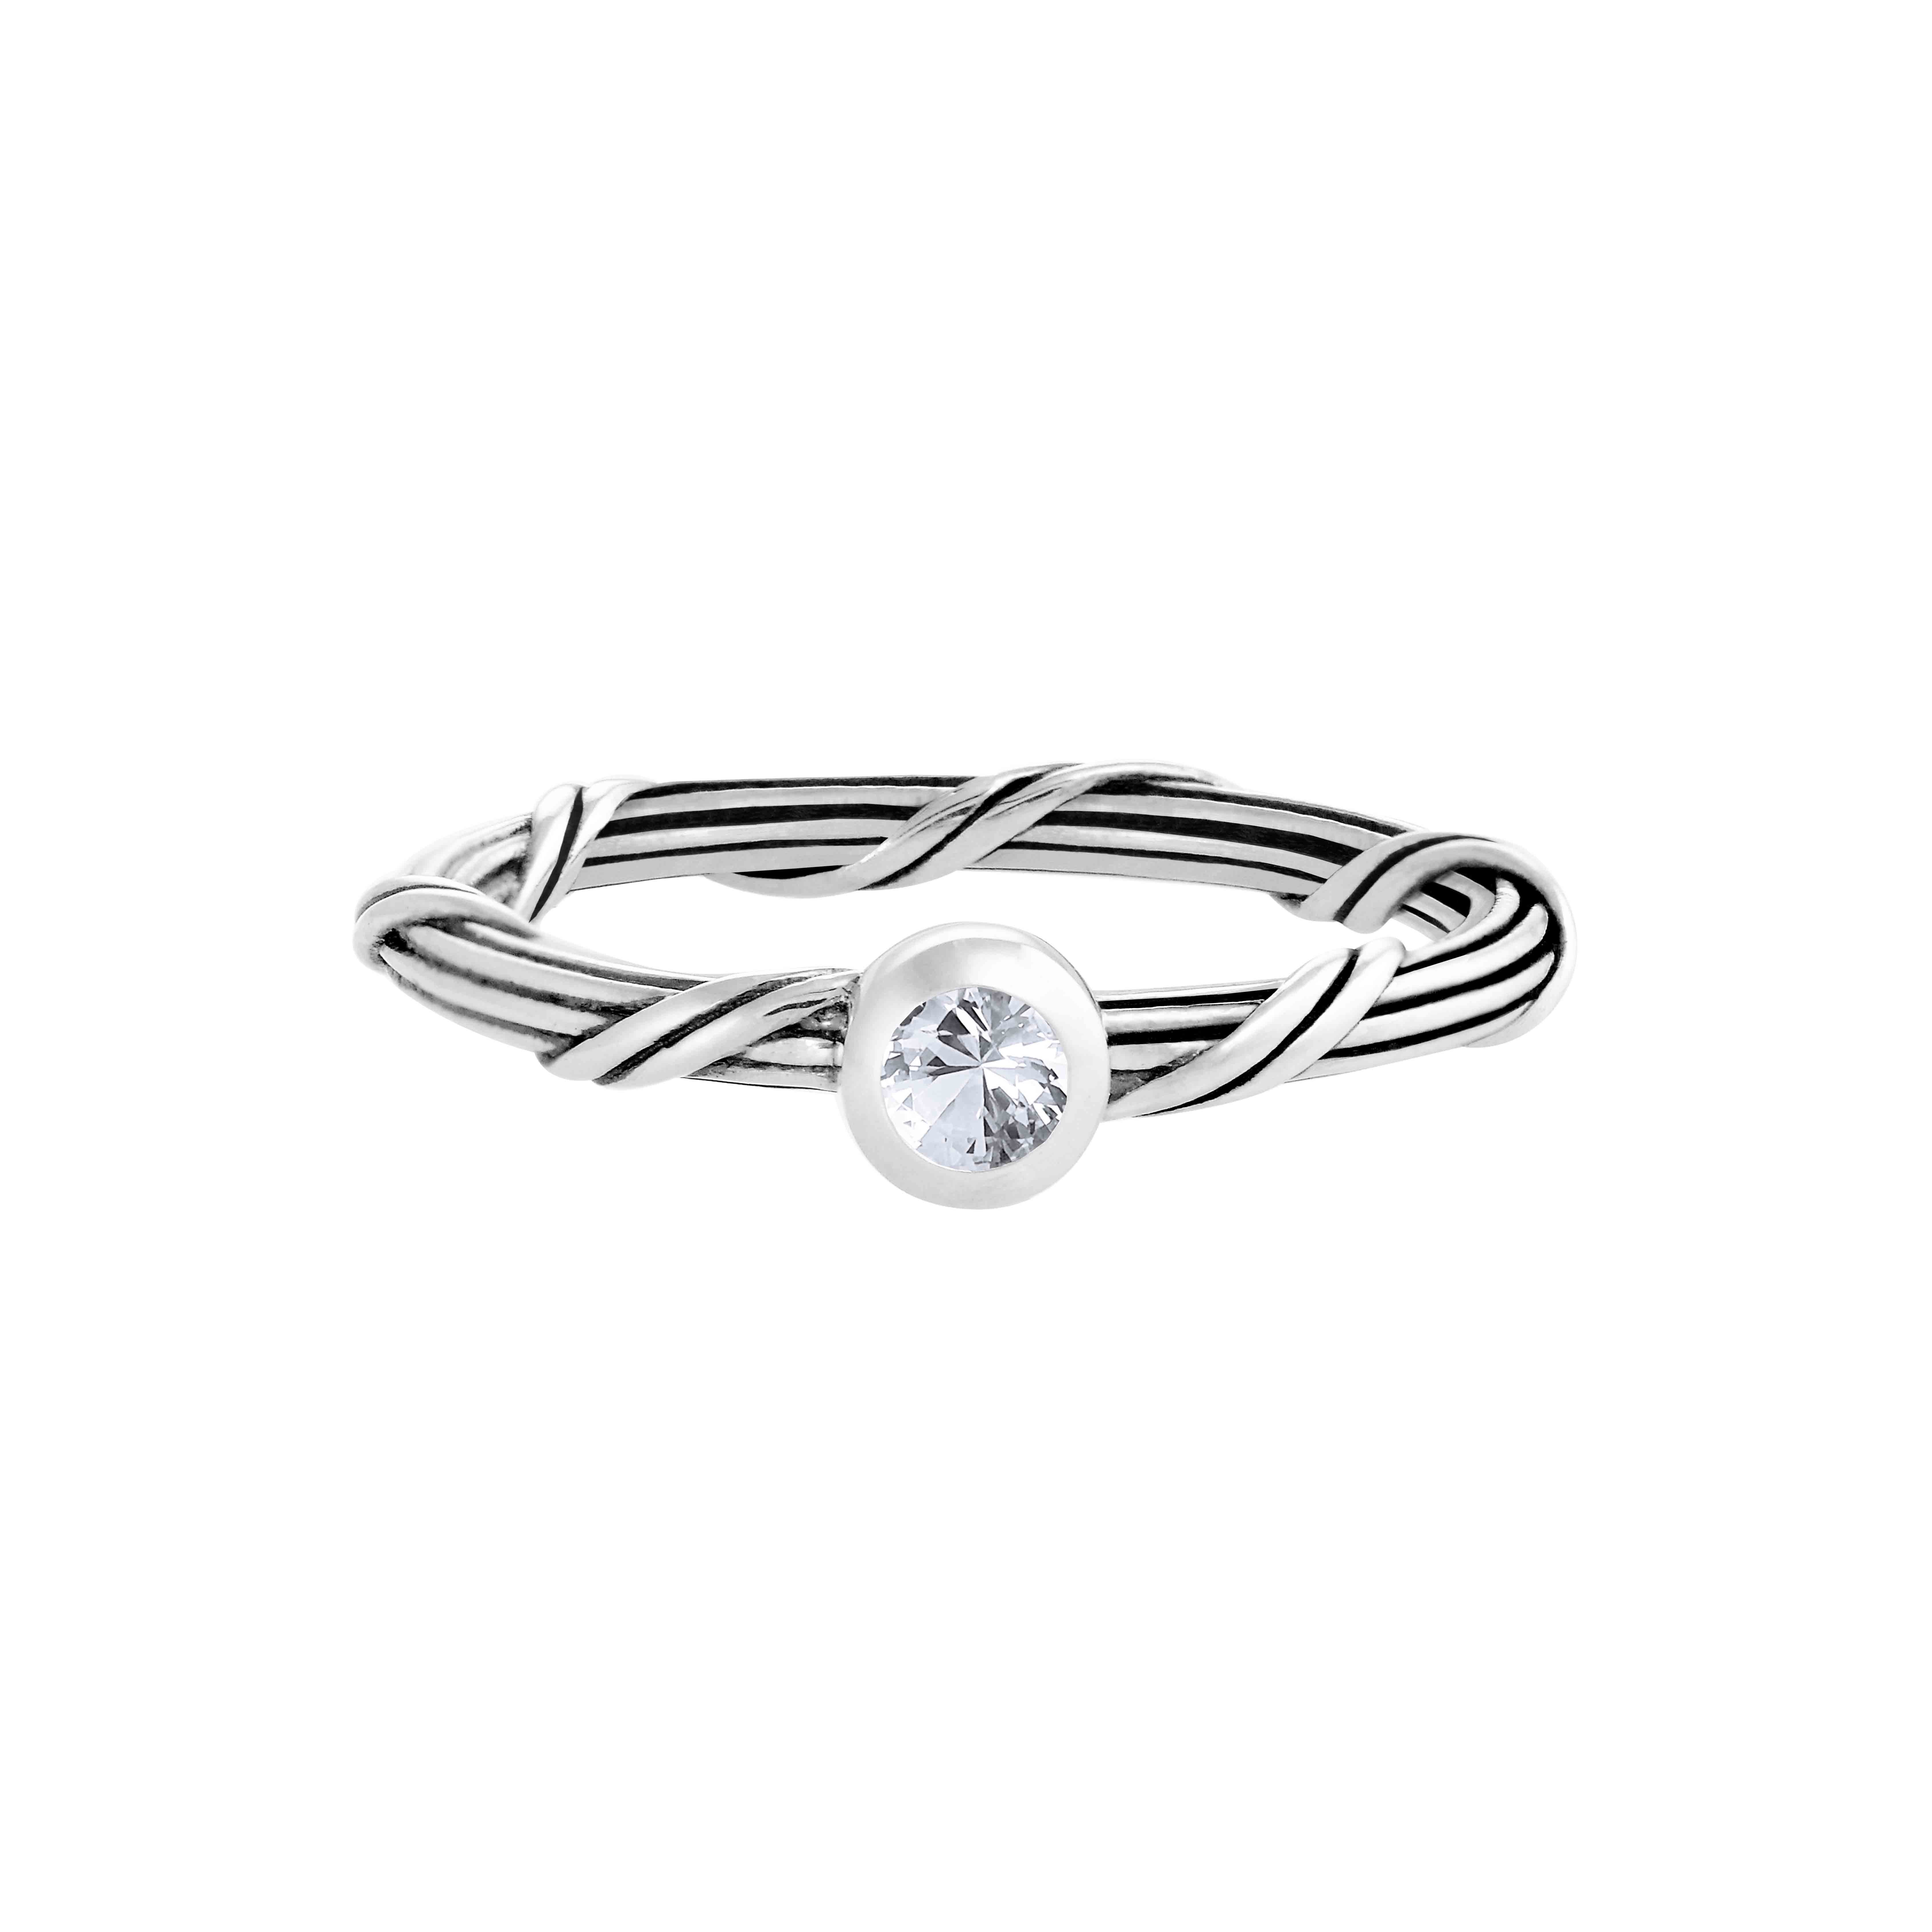 Signature Romance White Sapphire Ring in sterling silver